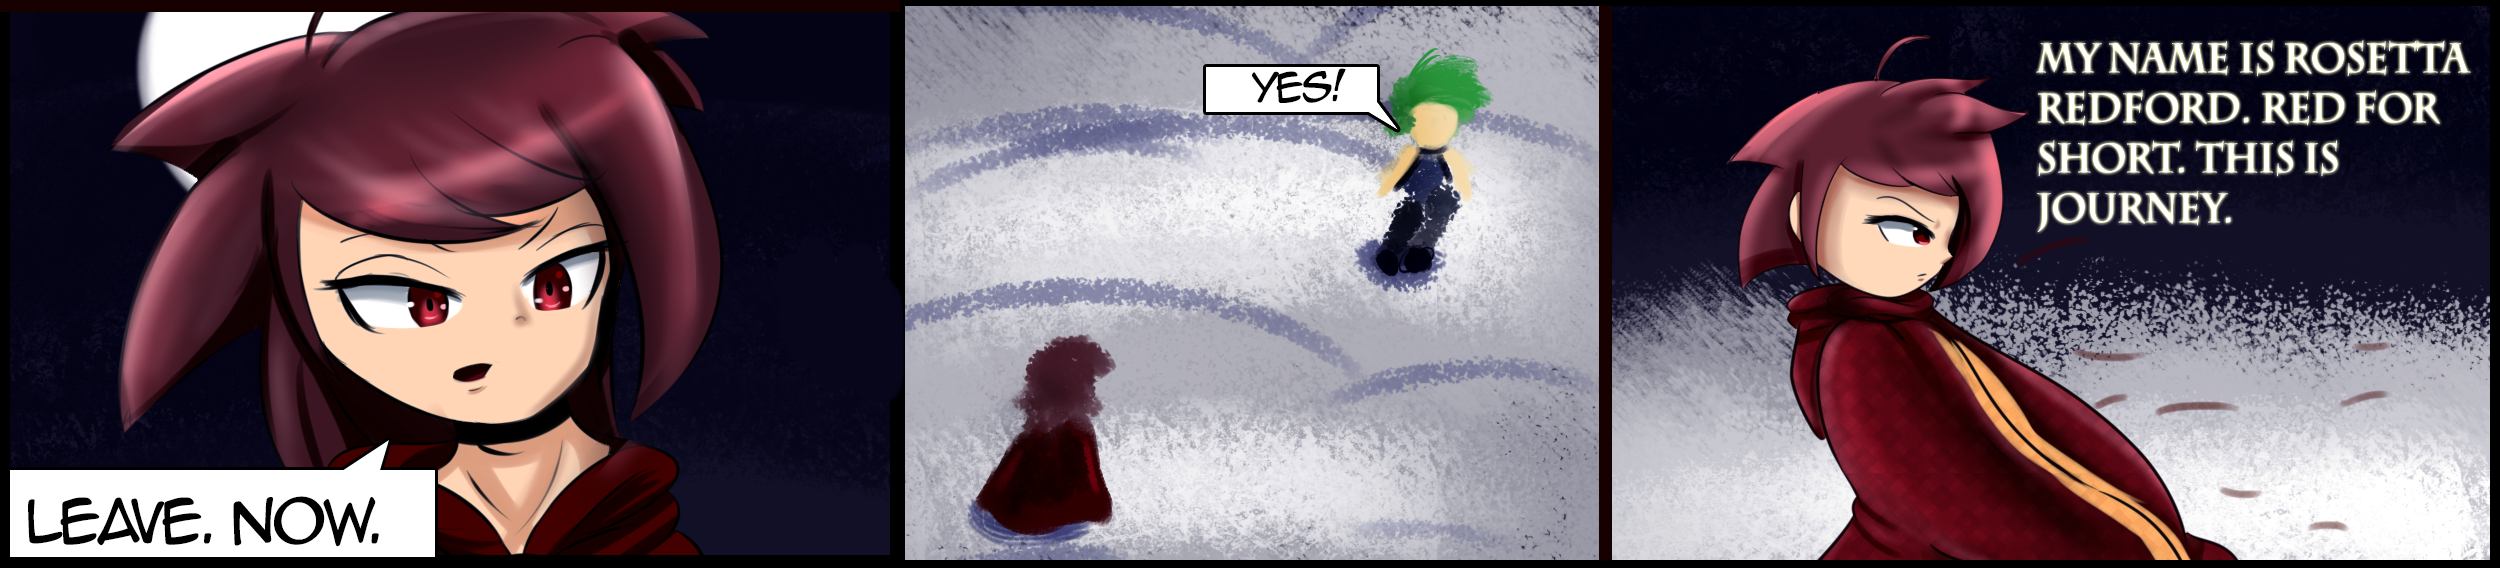 "Comic strip of girl in red cloak telling boy to ""leave now."""